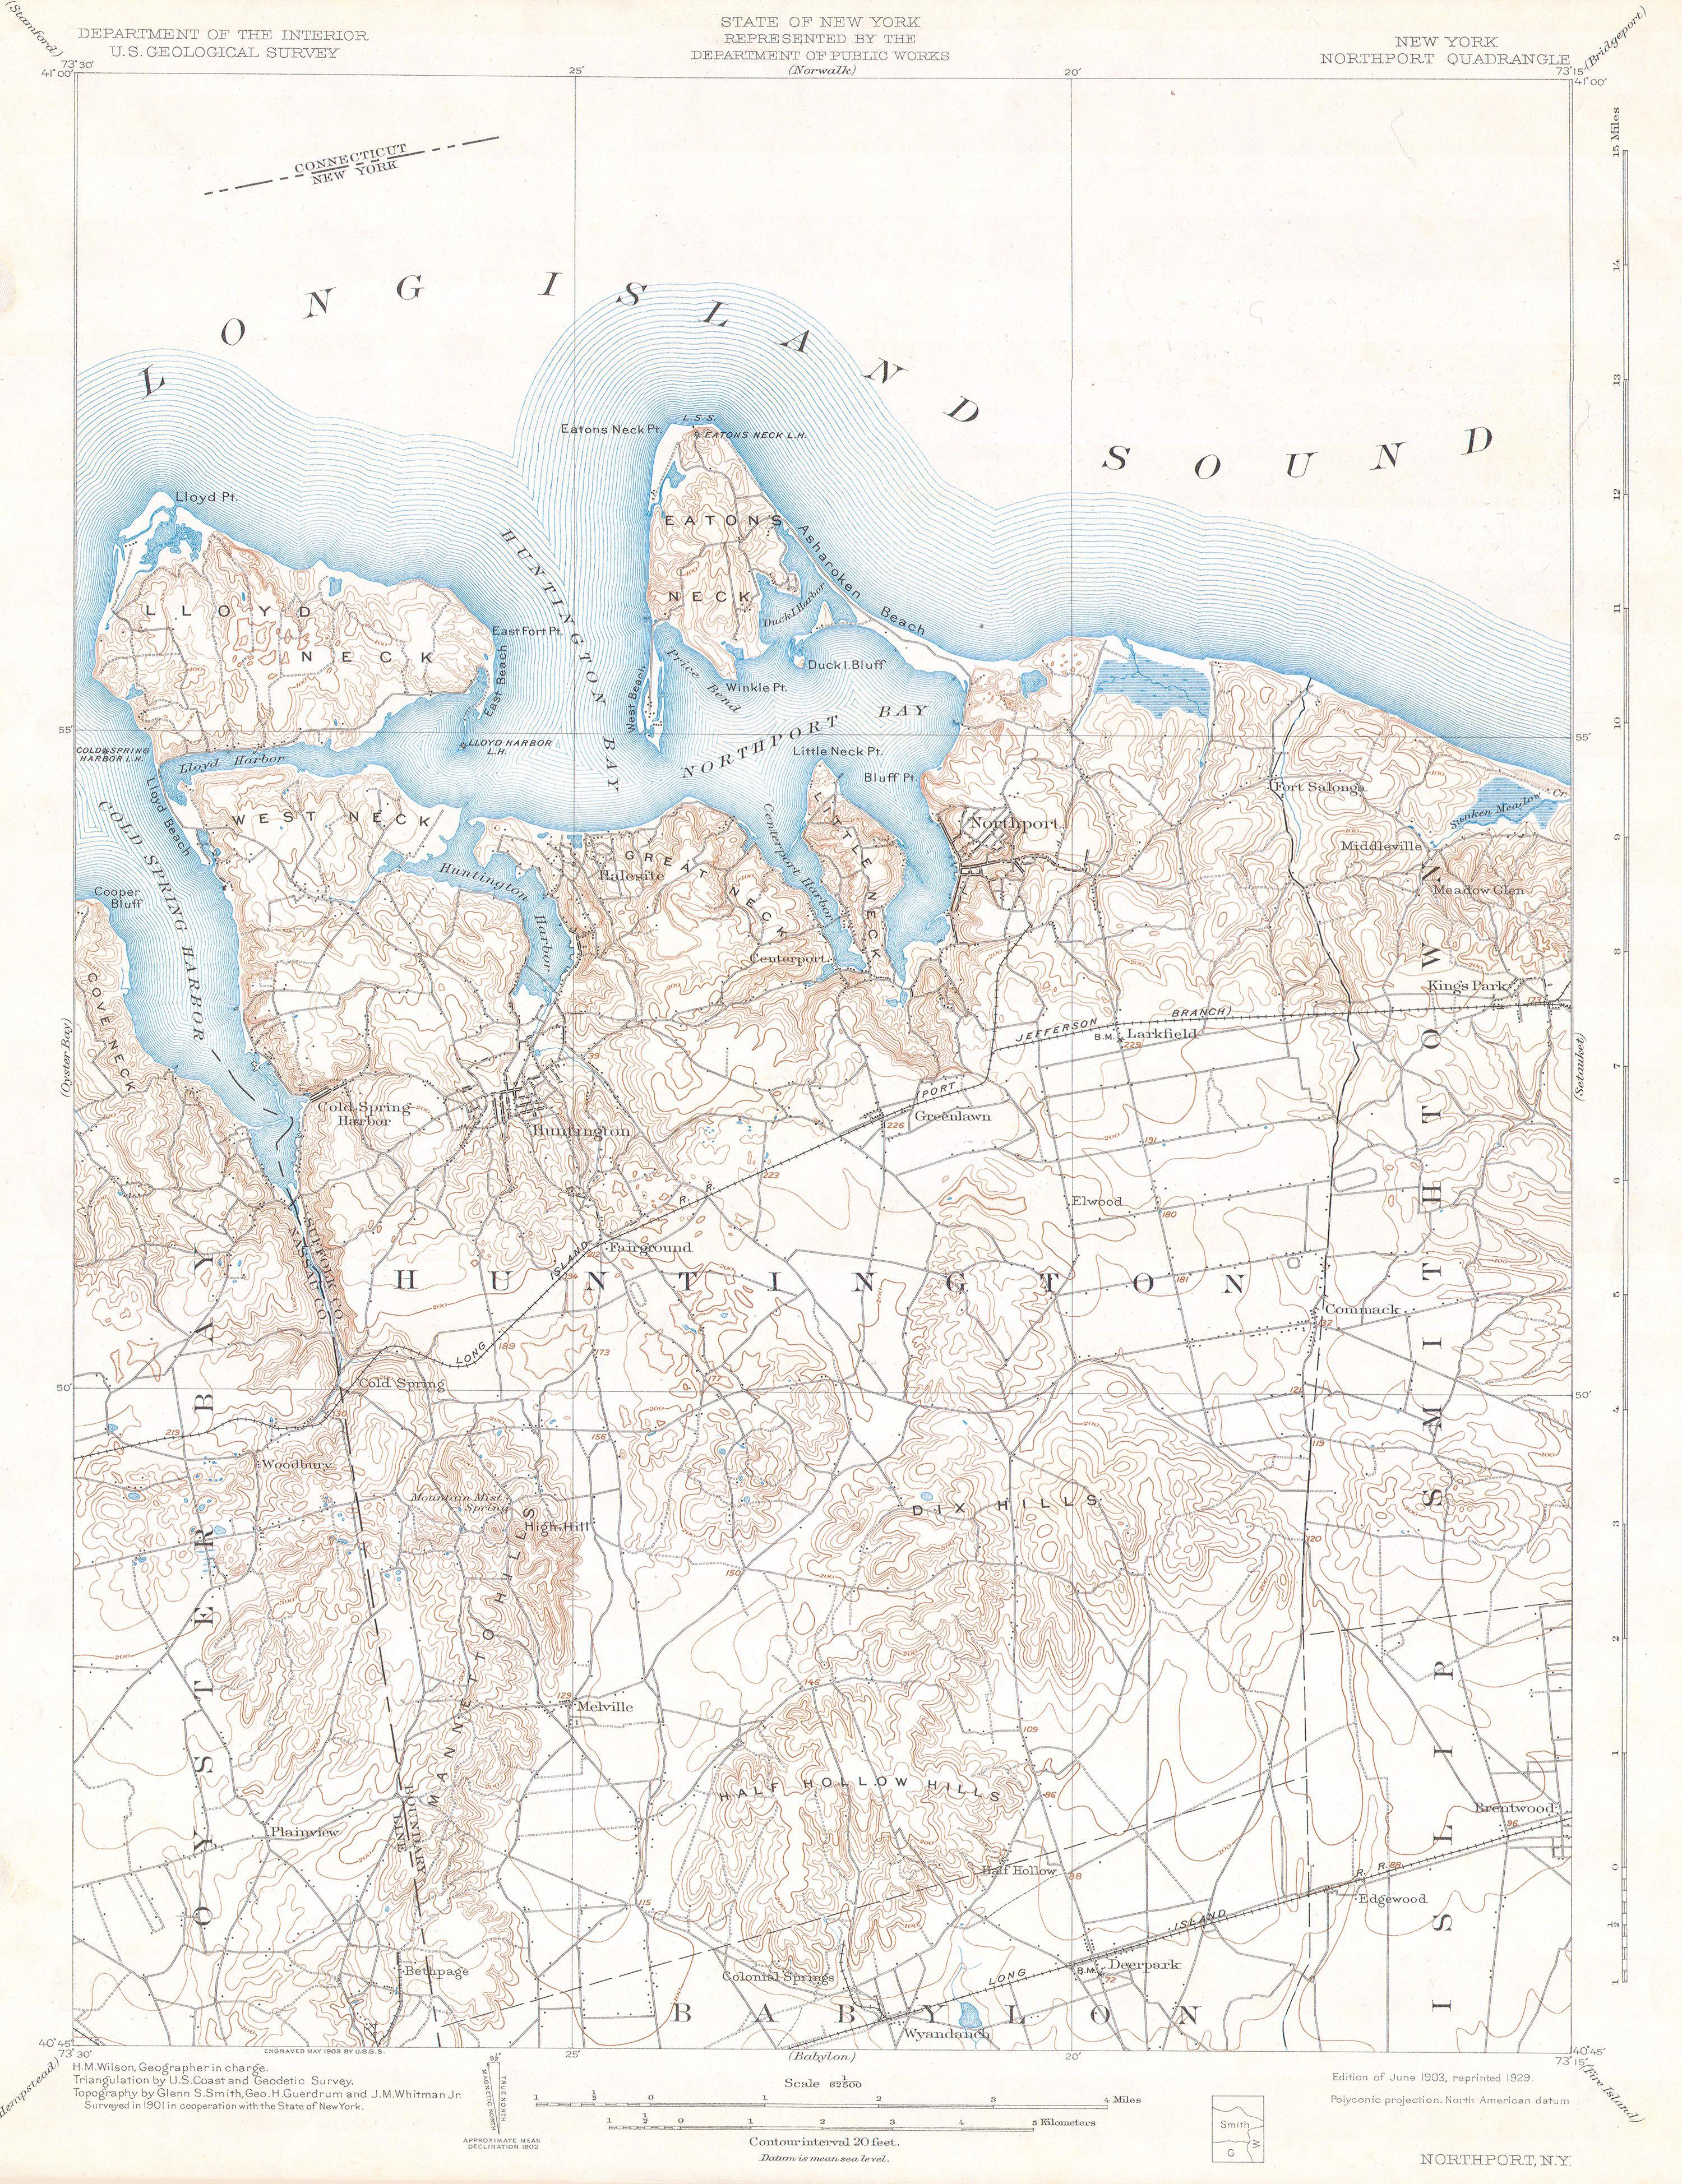 Department Of The Interior Organizational Chart: 1900 U.S.G.S Map of Huntington and Northport Long Island ,Chart